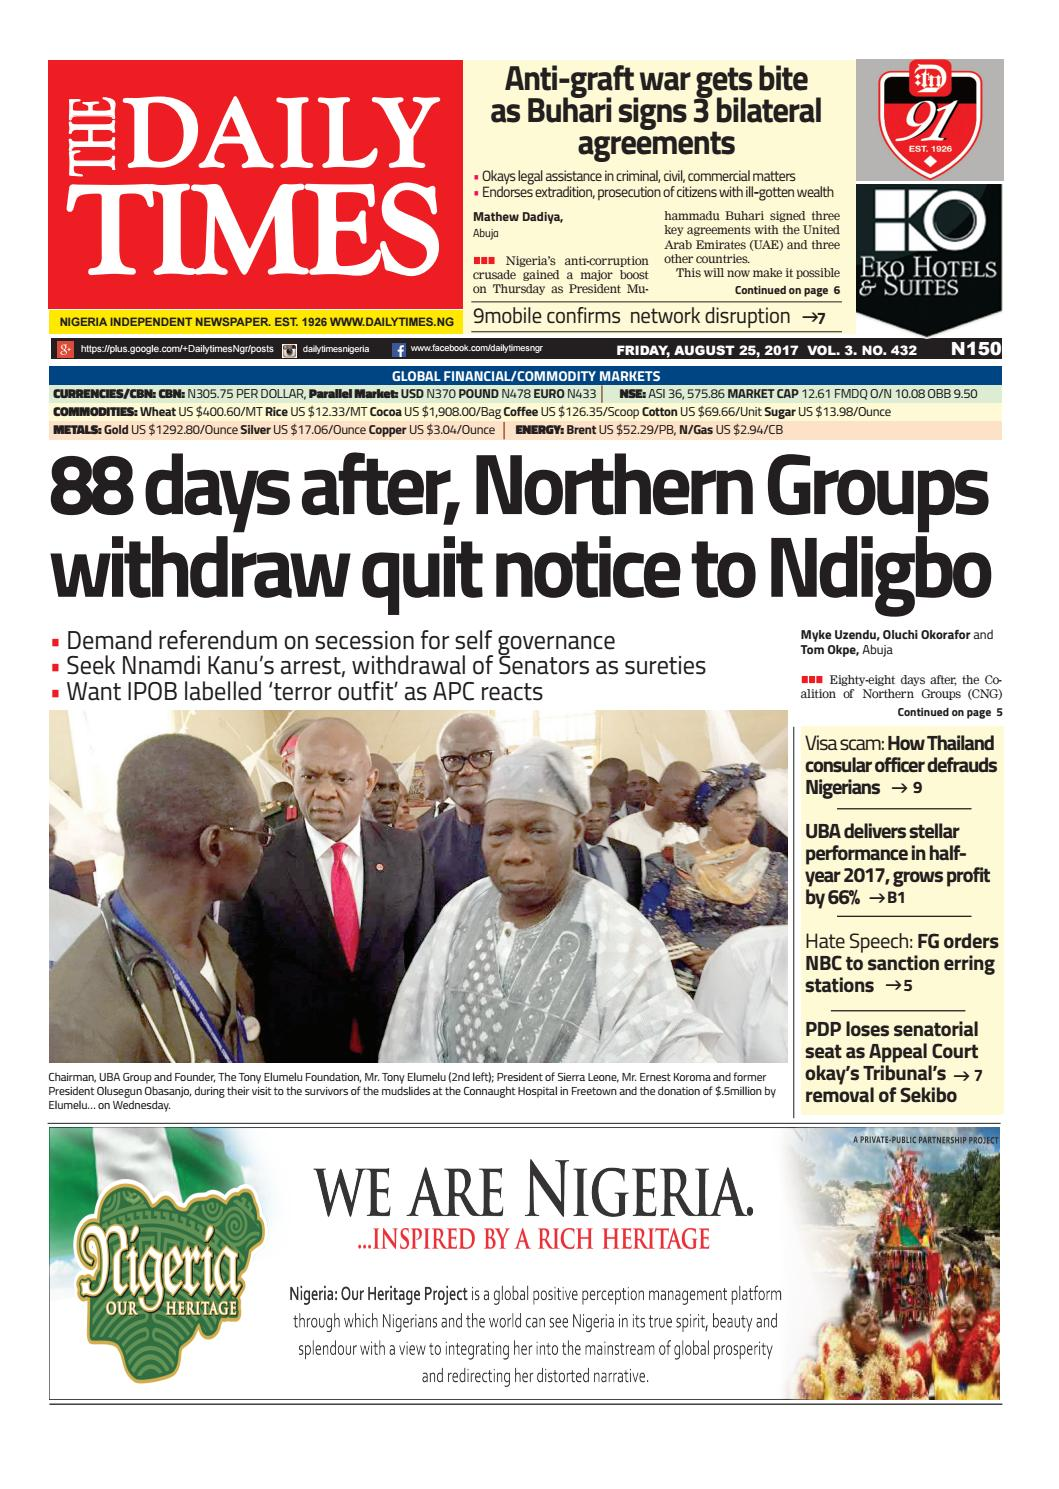 Dtn 25 8 17 by Daily Times of Nigeria - issuu